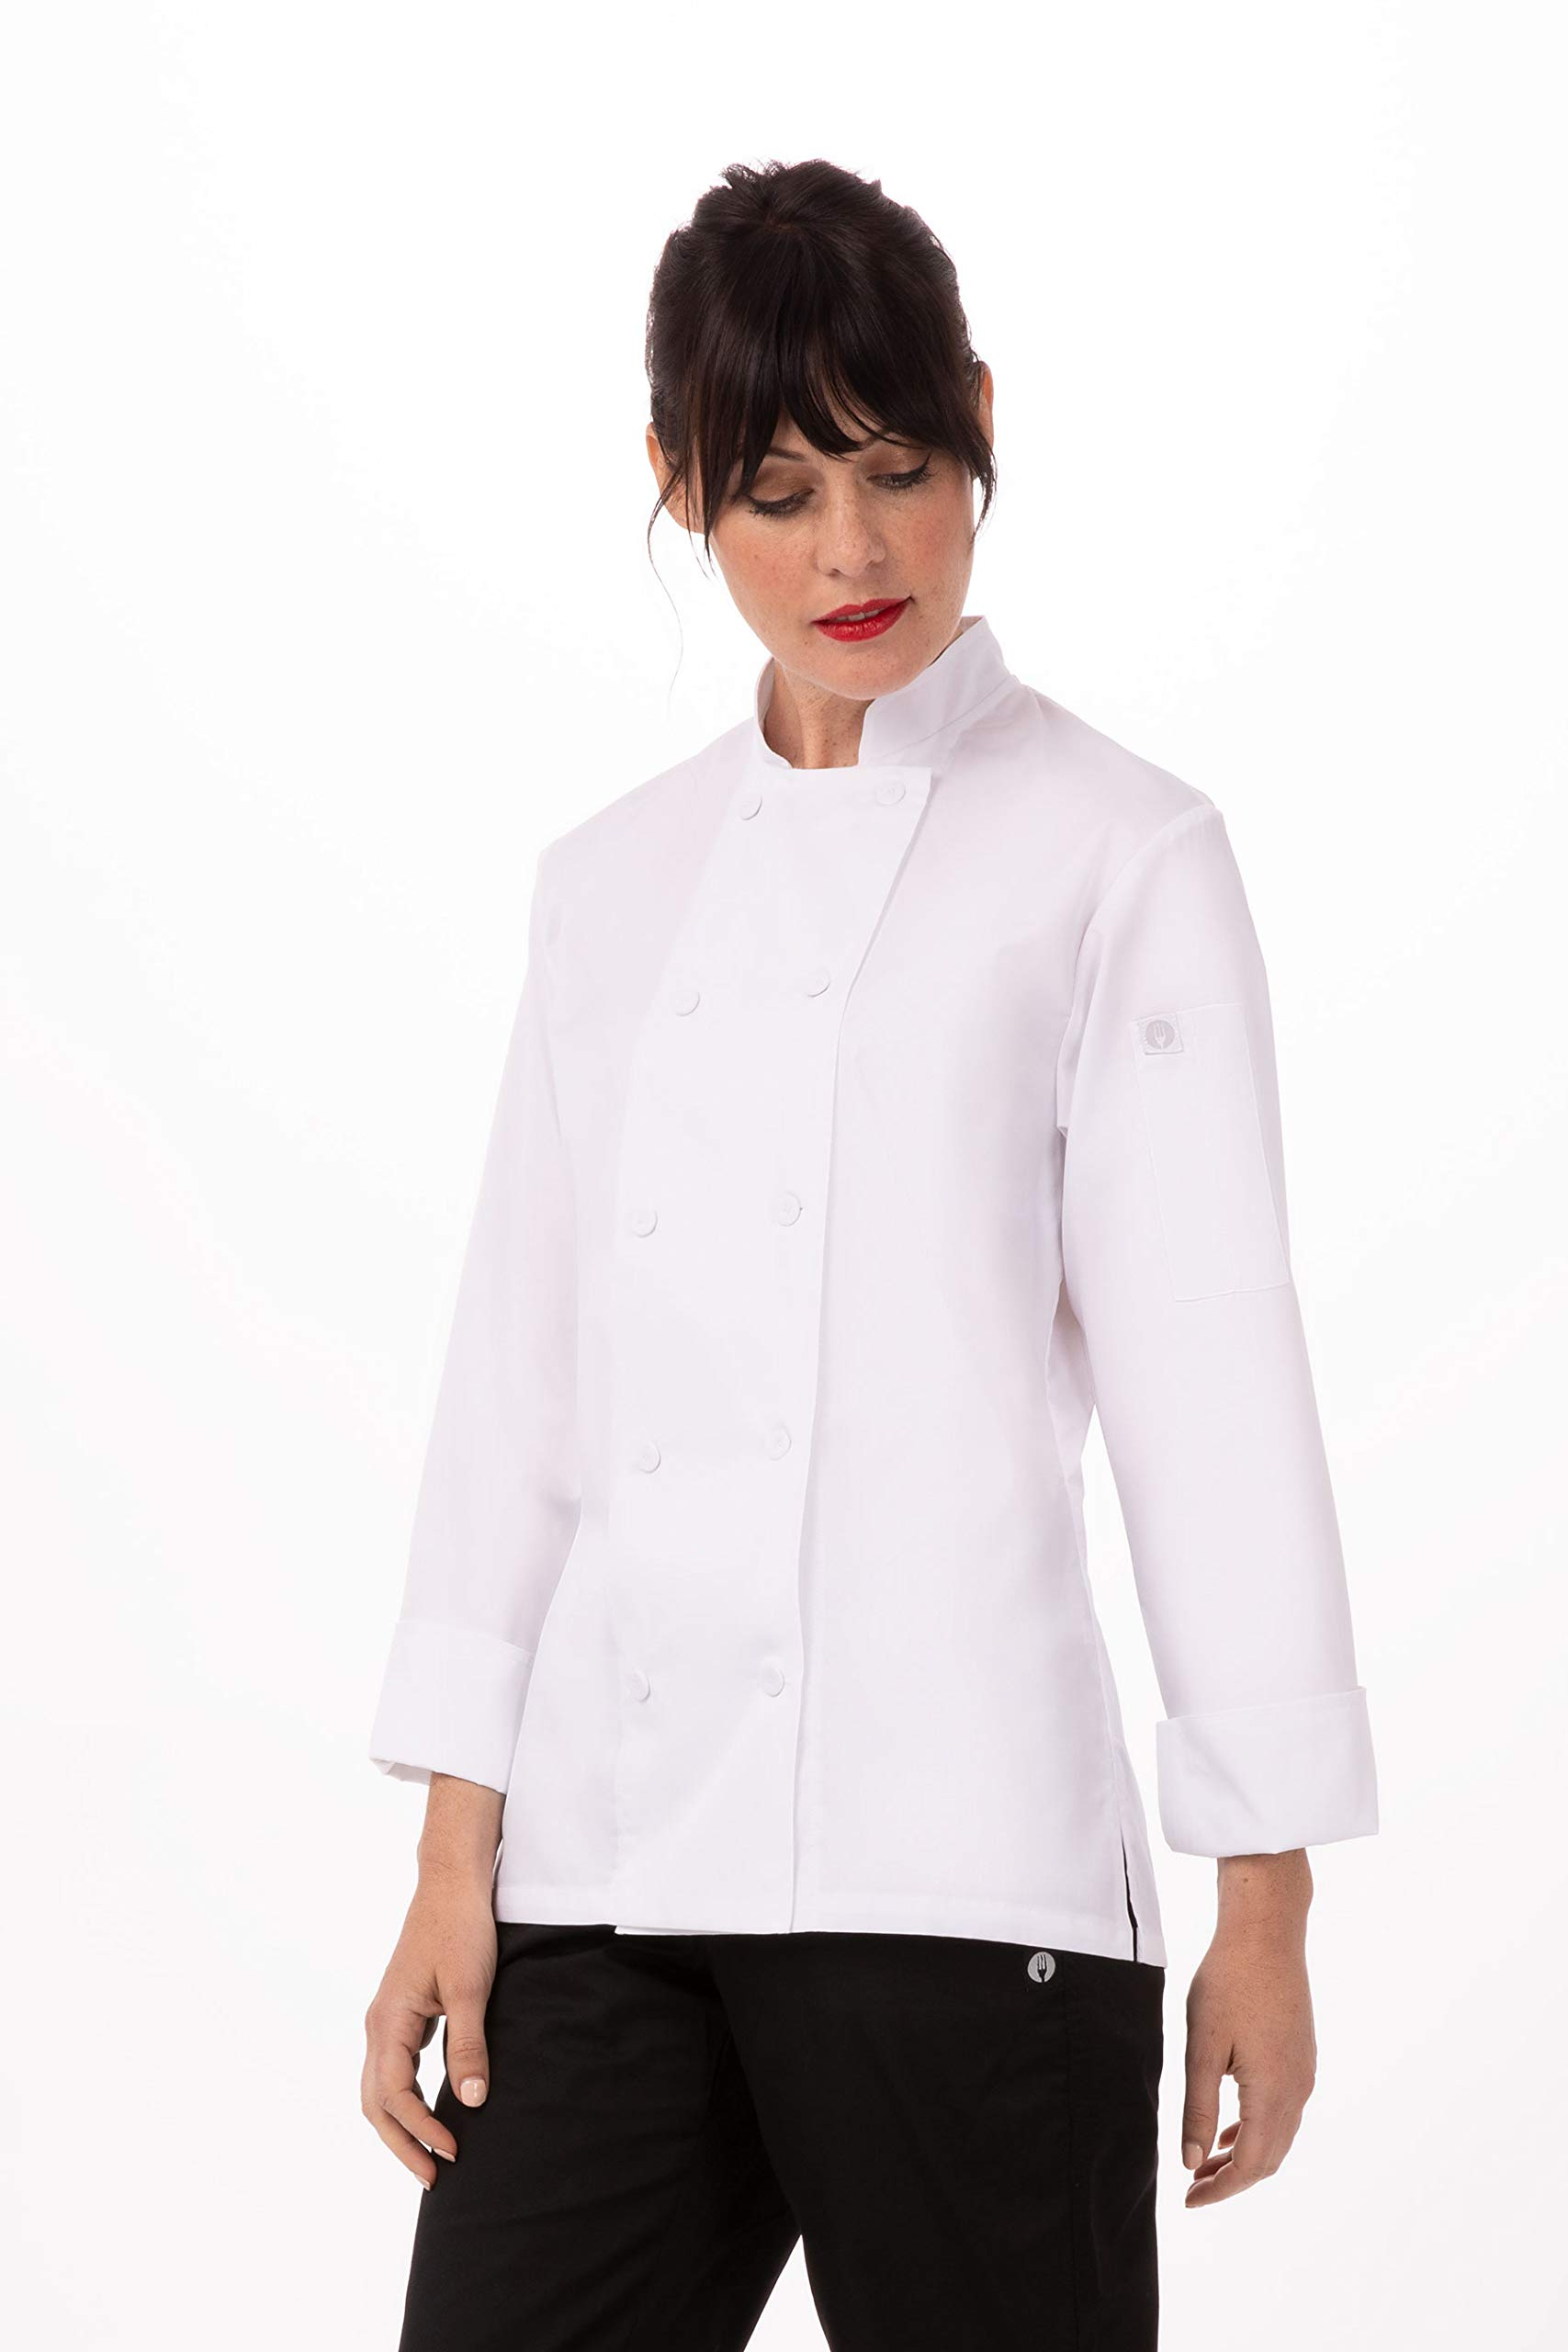 Chef Works Women's Sofia Chef Coat, White, Small by Chef Works